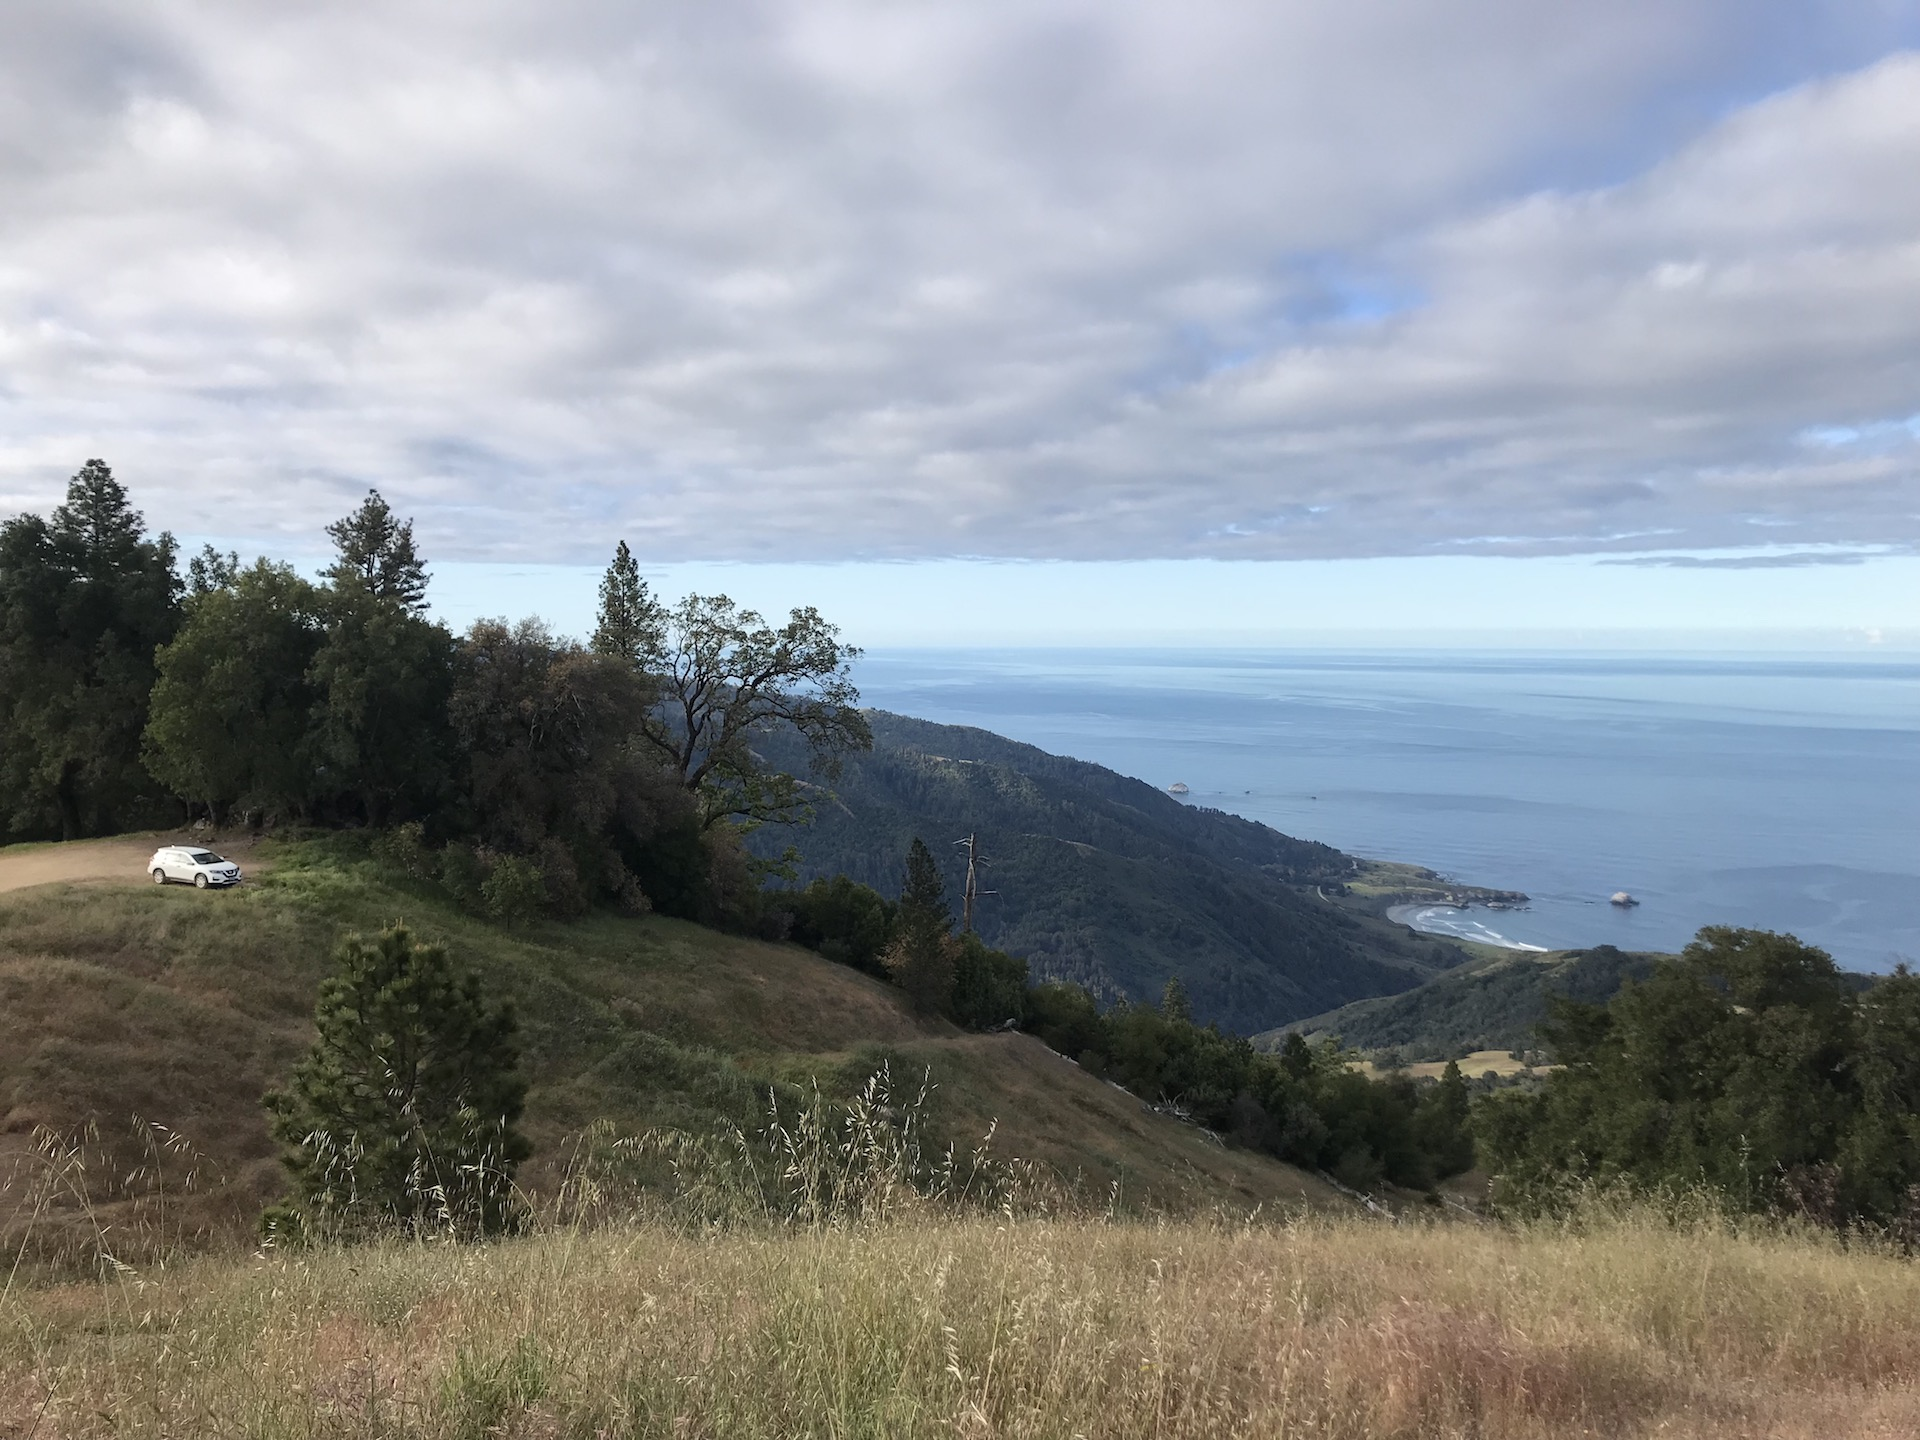 Free campsite along Big Sur and highway 1